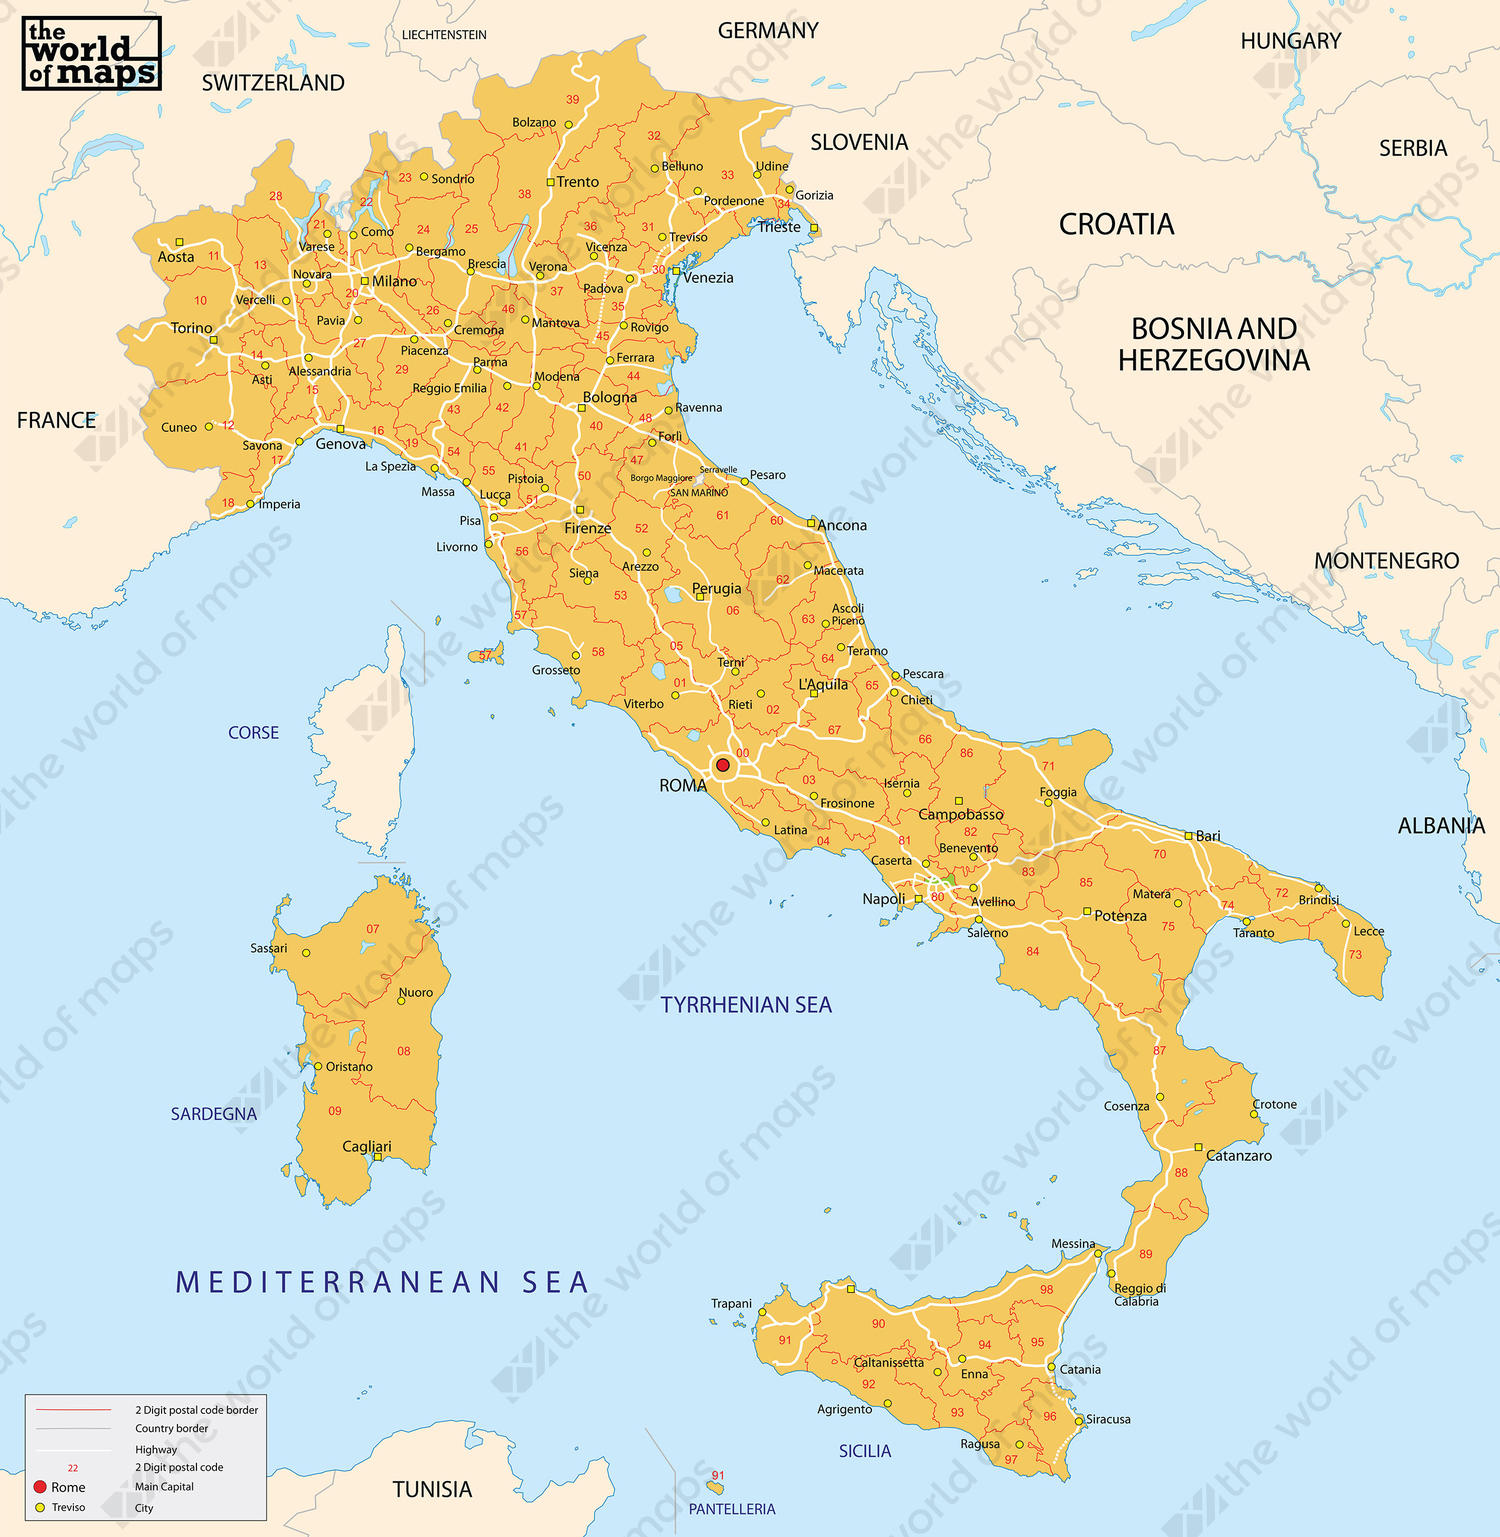 Digital postcode map italy 2 digit 86 the world of maps digital postcode map italy 2 digit gumiabroncs Gallery